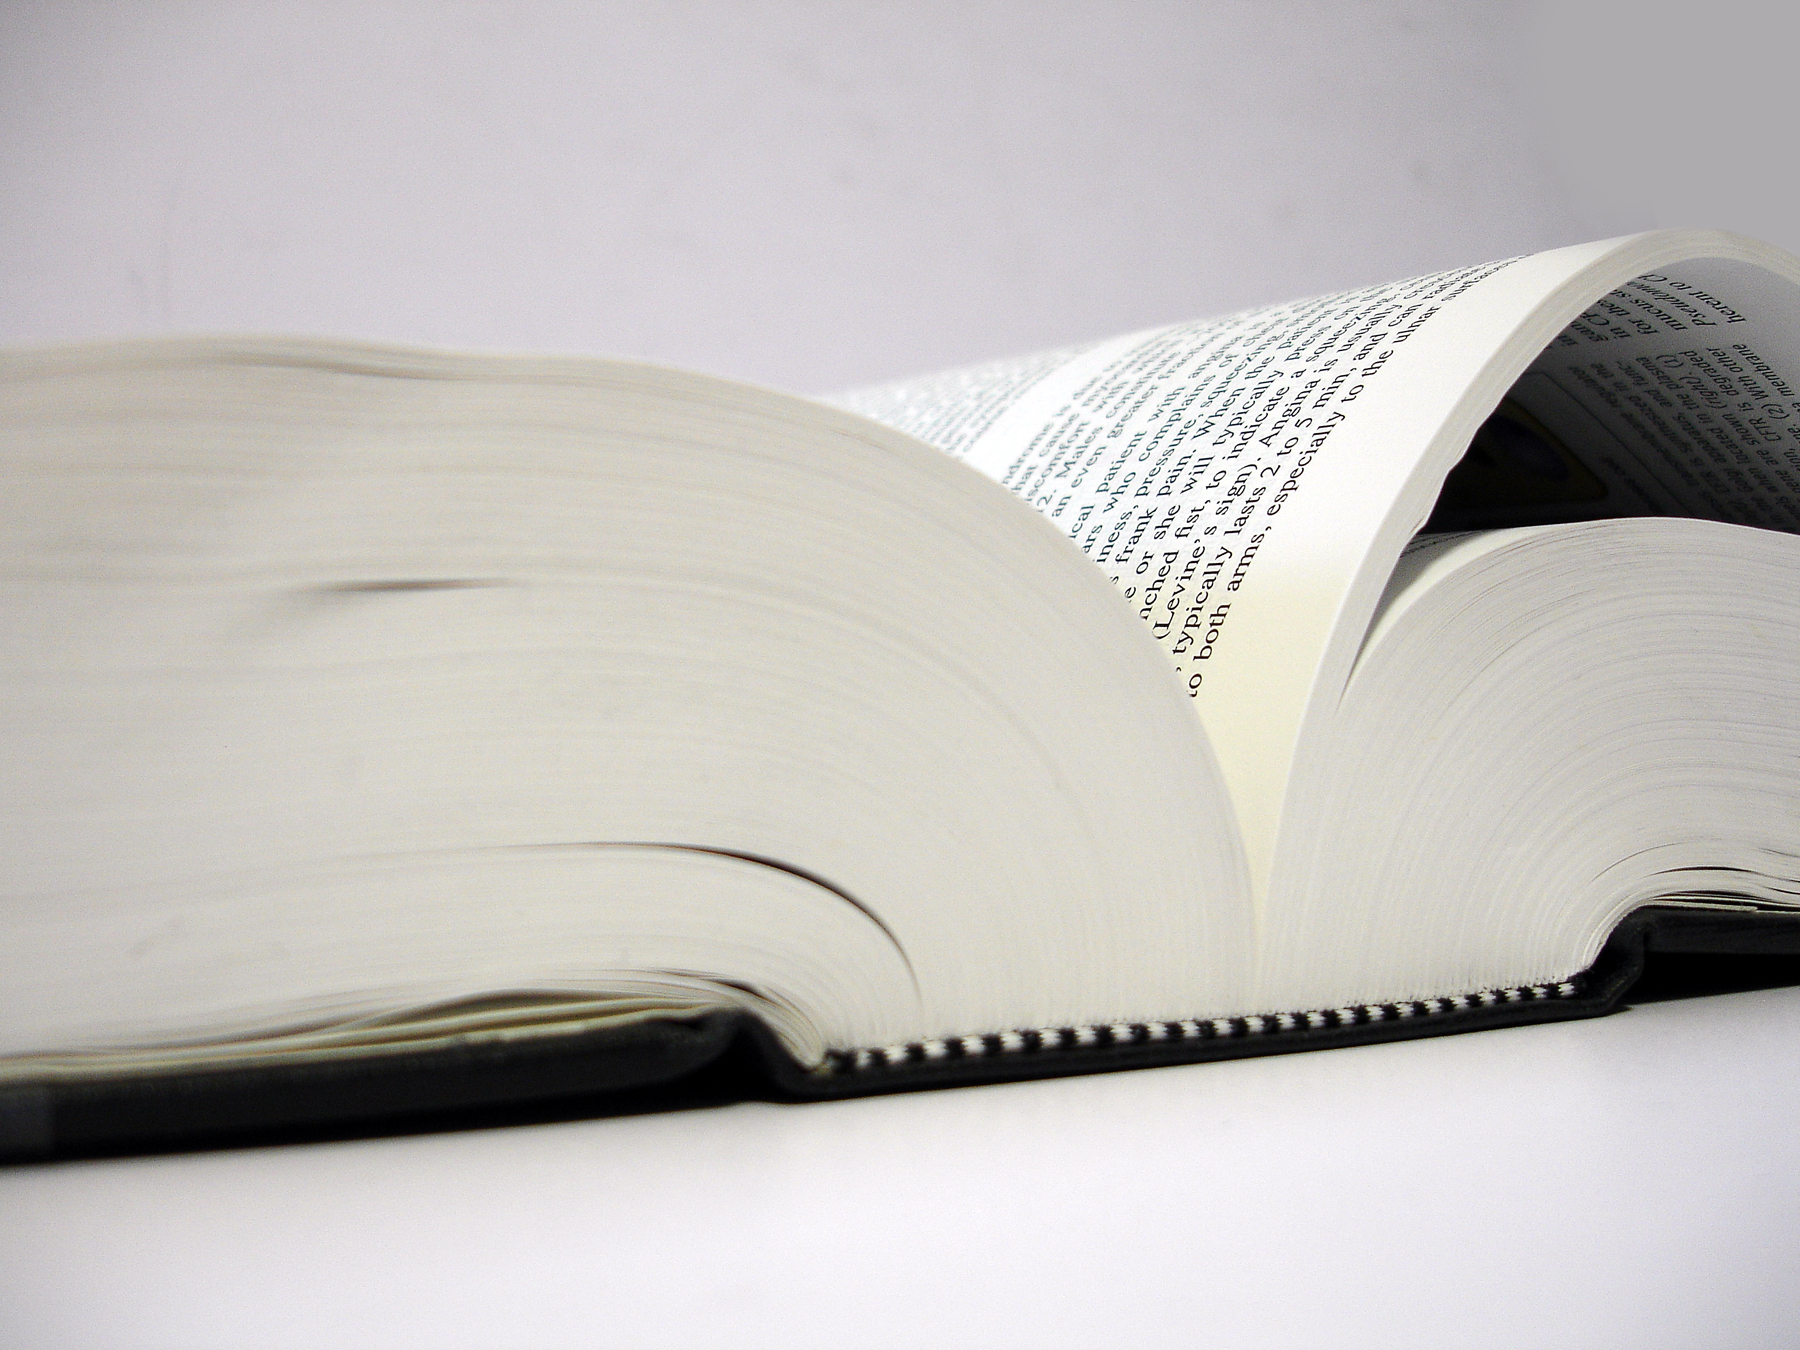 Open book, Book, Learn, Open, Pages, HQ Photo